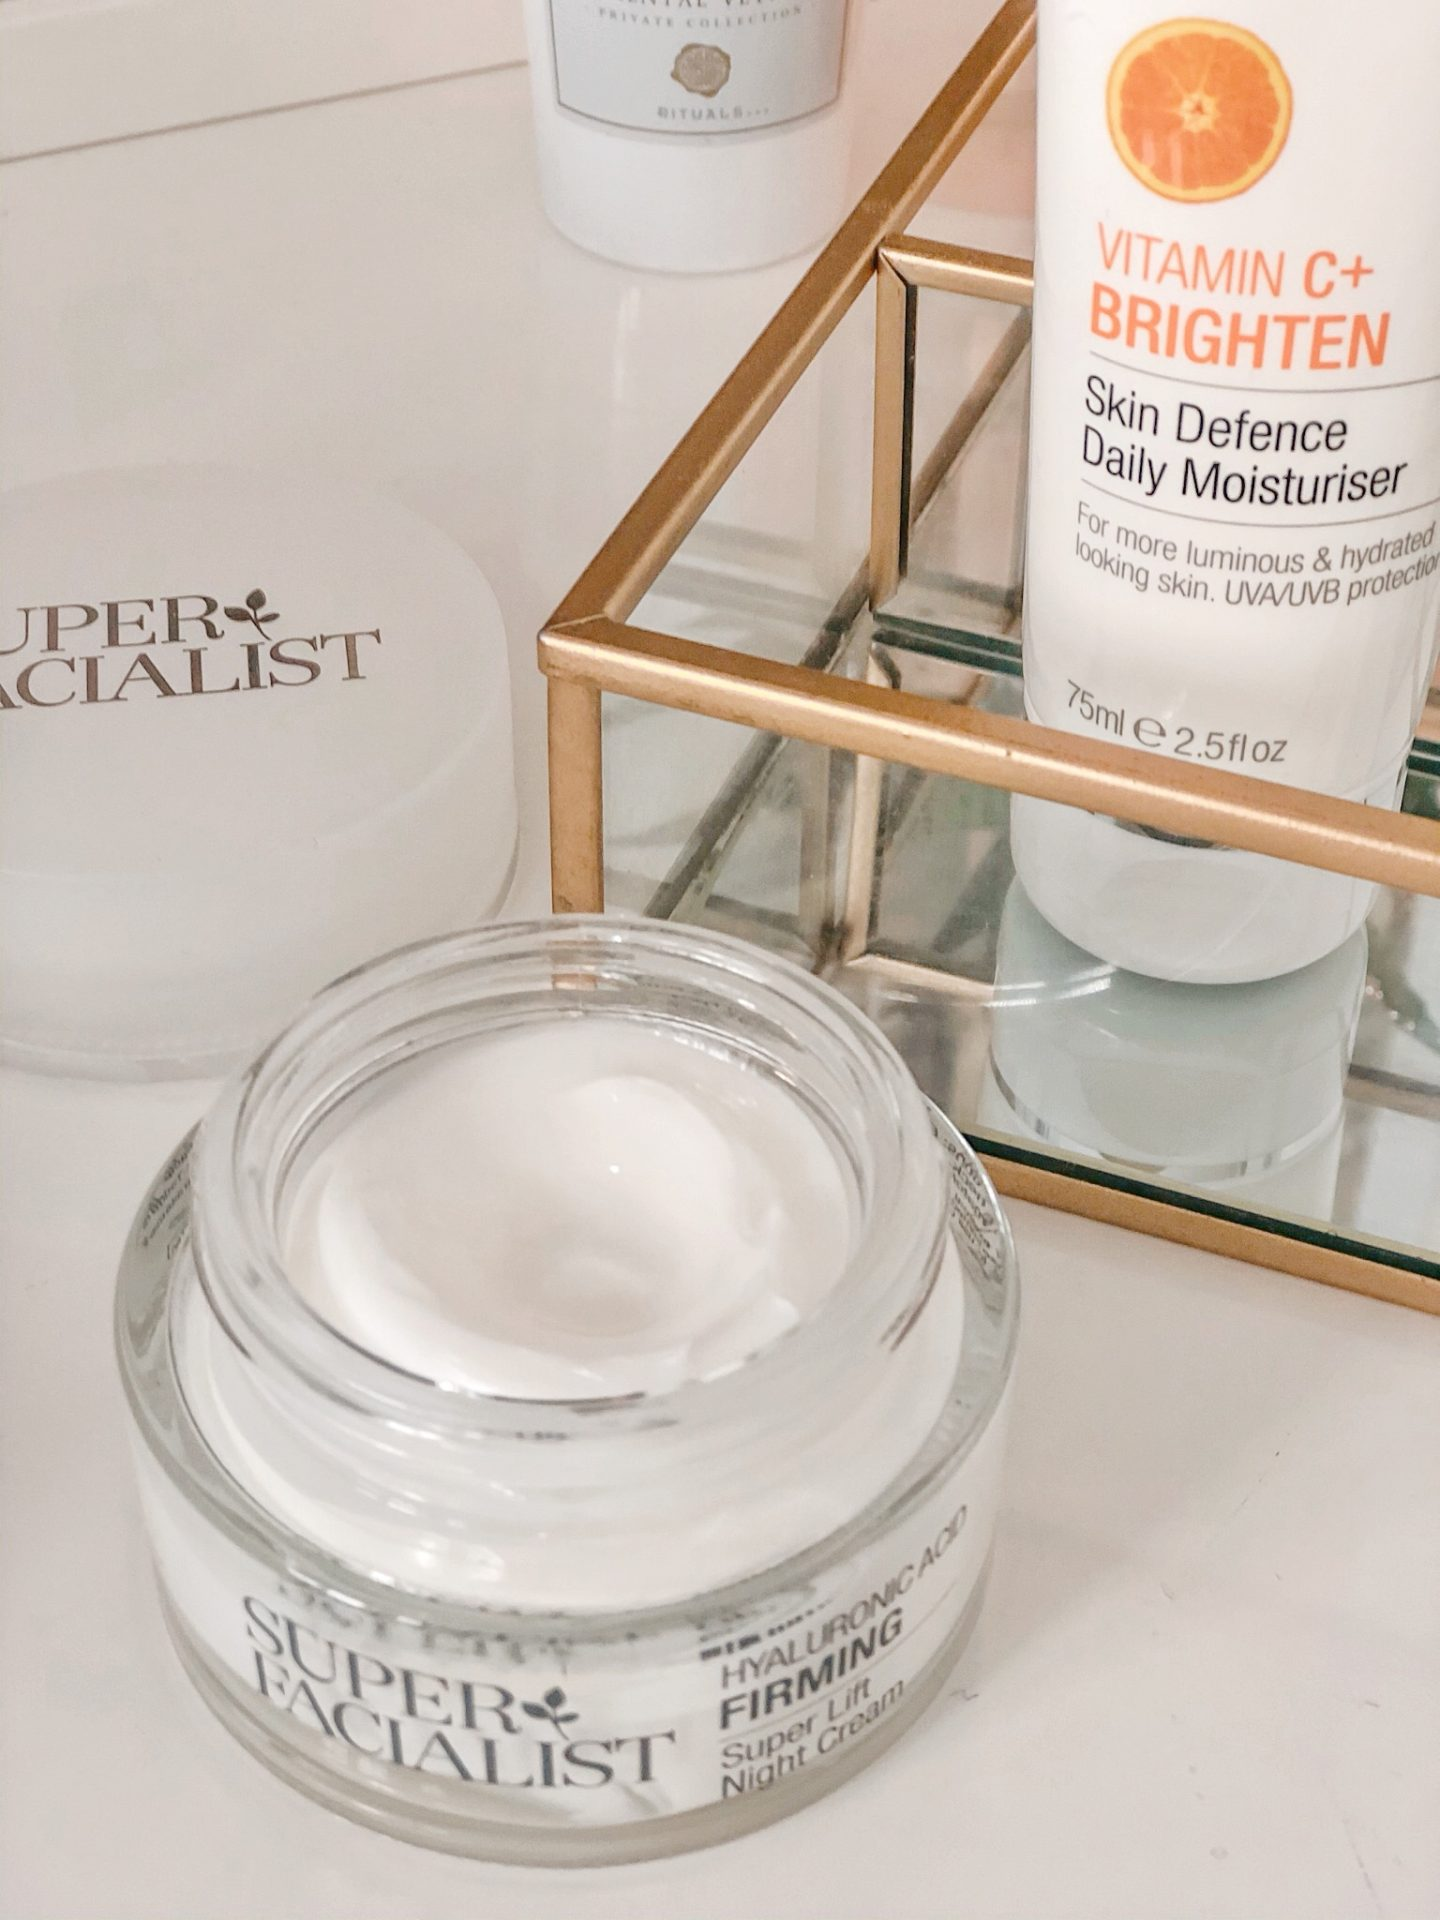 Hyaluronic Acid Firming Night Cream Super Facialist